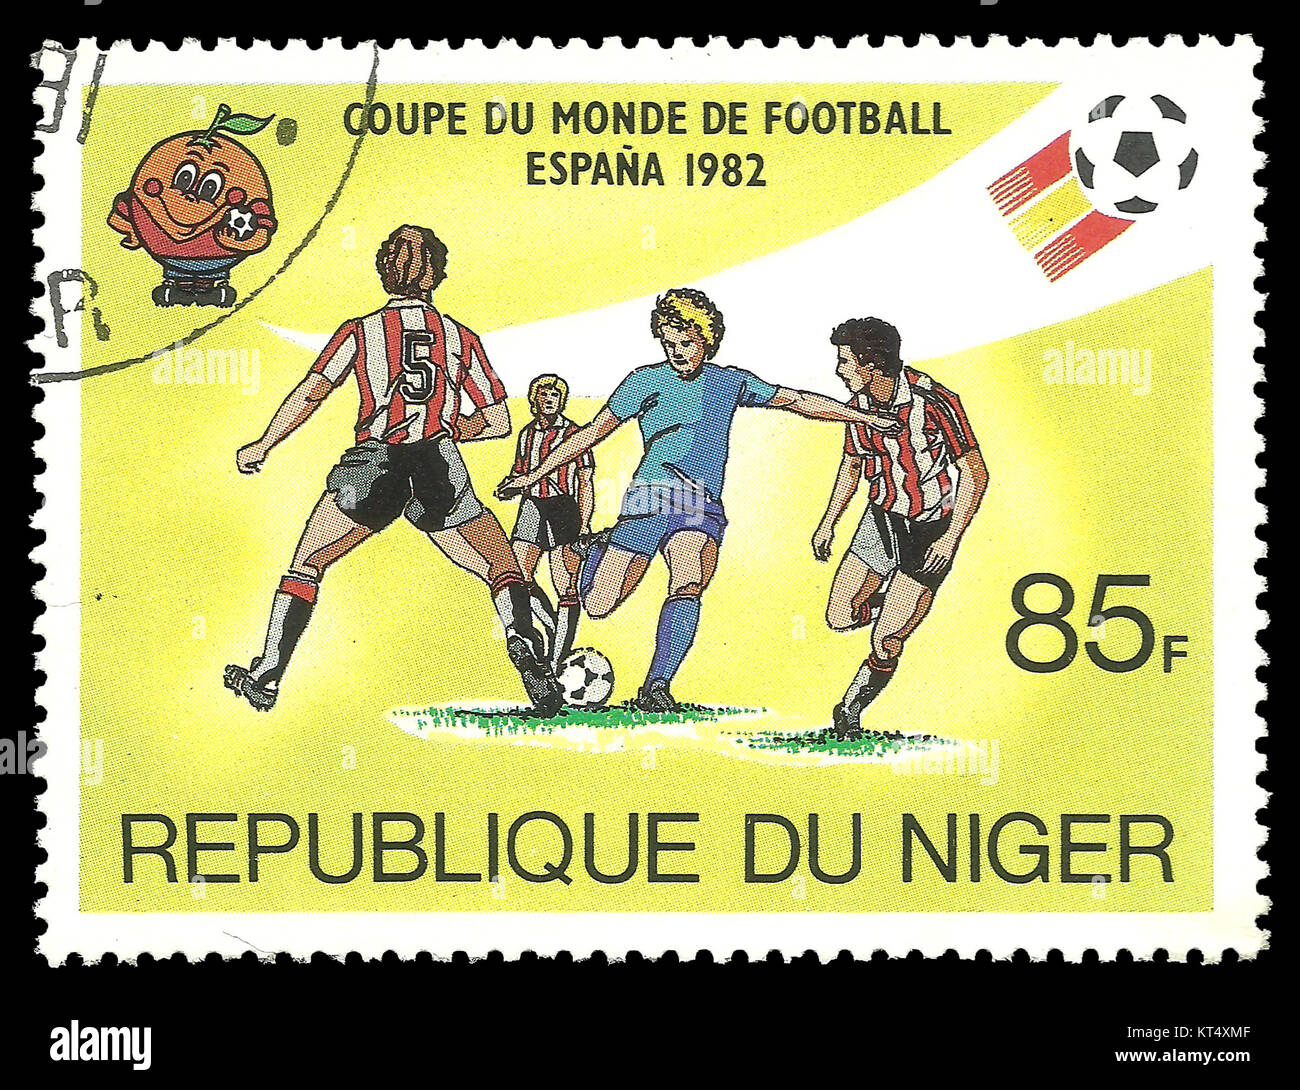 Niger - CIRCA 1981: Stamp on topic of Spain World Football Cup 1988, shows soccer player strikes the ball - Stock Image